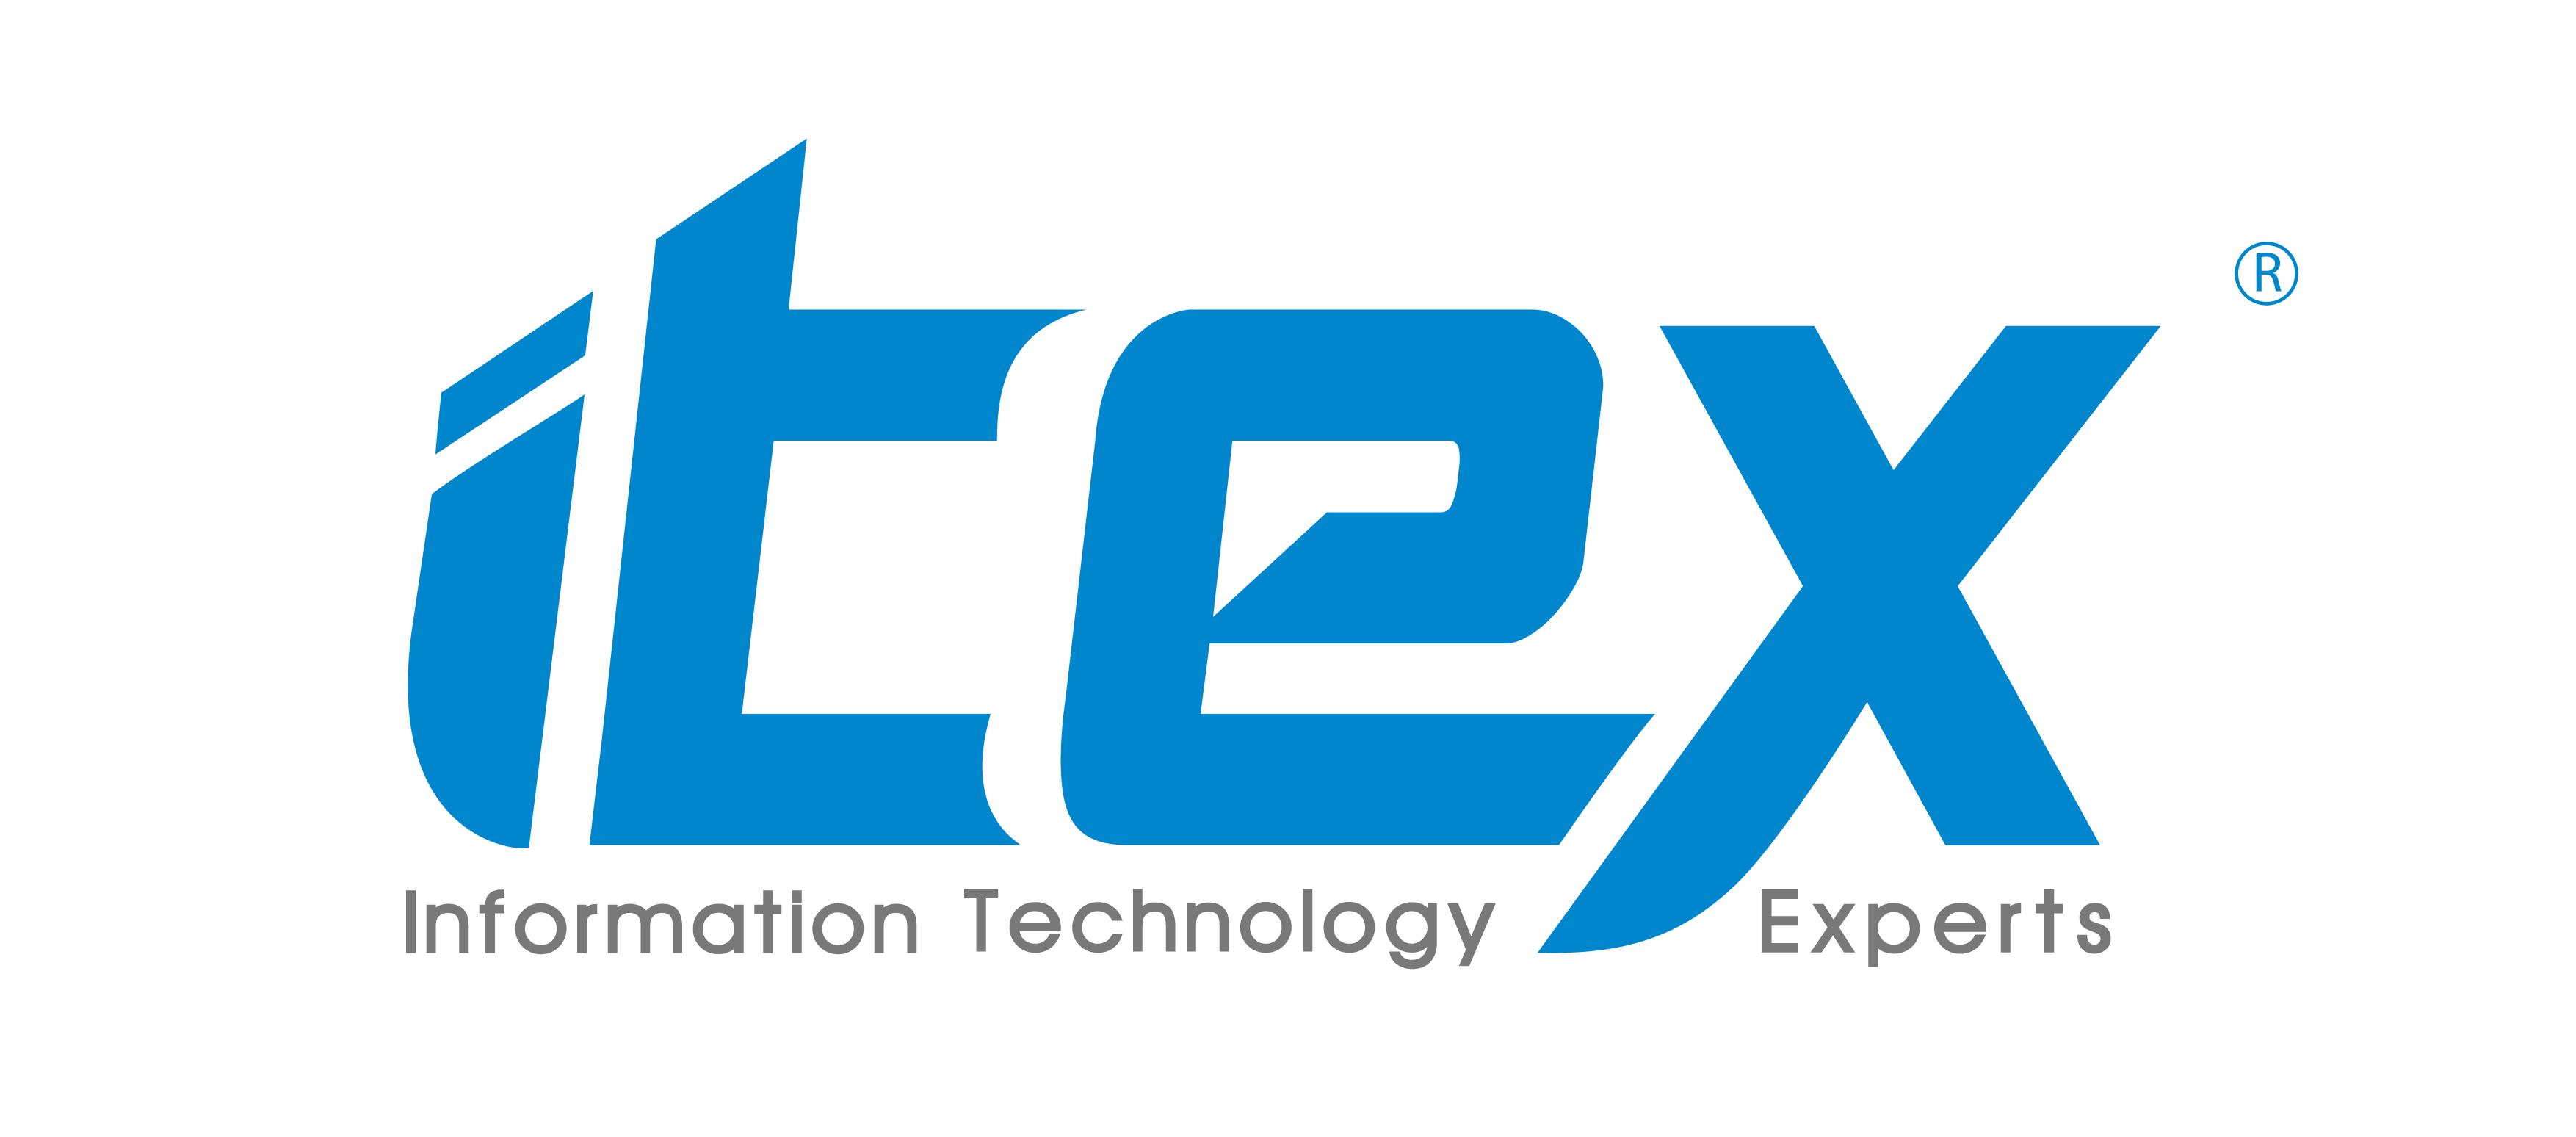 ITEX - Information Technology Experts